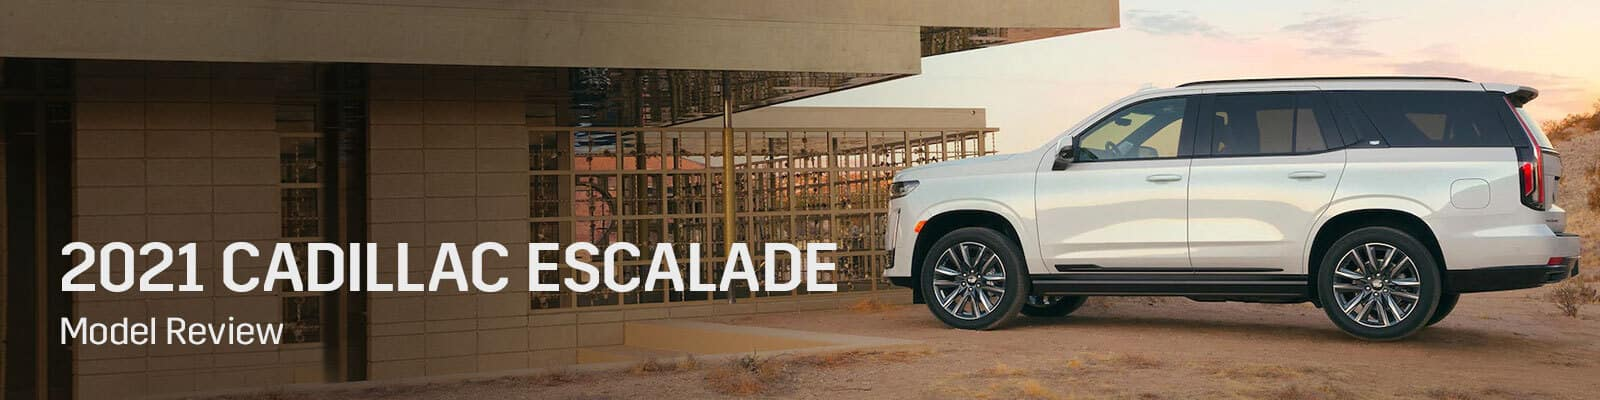 2021 Cadillac Escalade Model Overview - Germain Cadillac of Easton